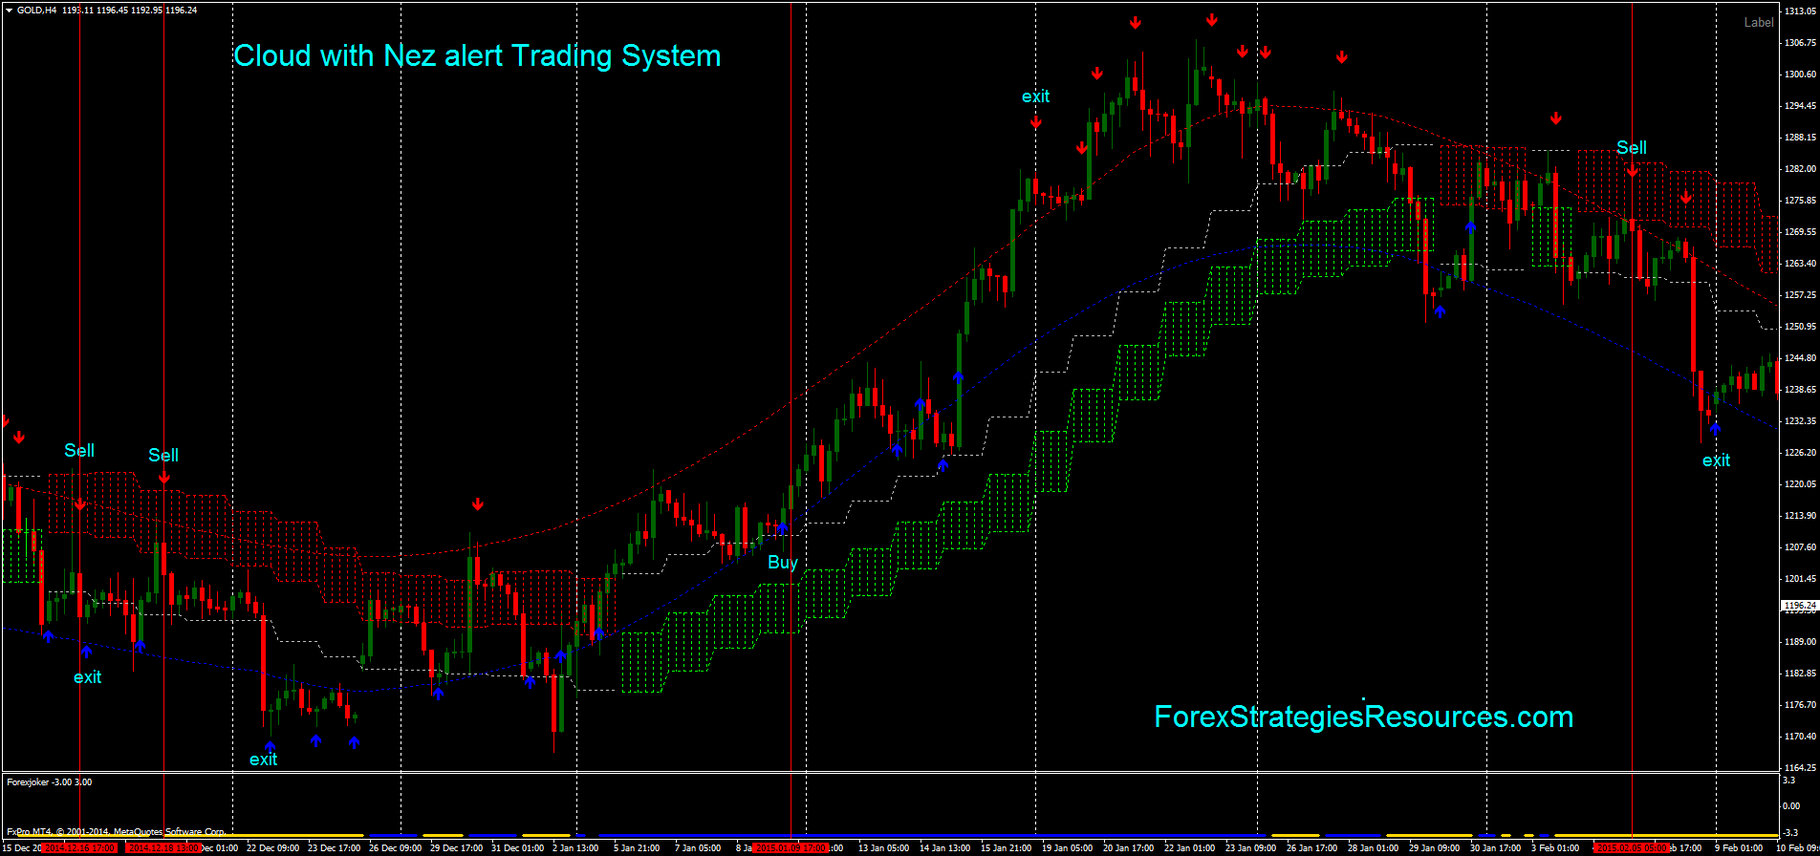 Cloud Trading System